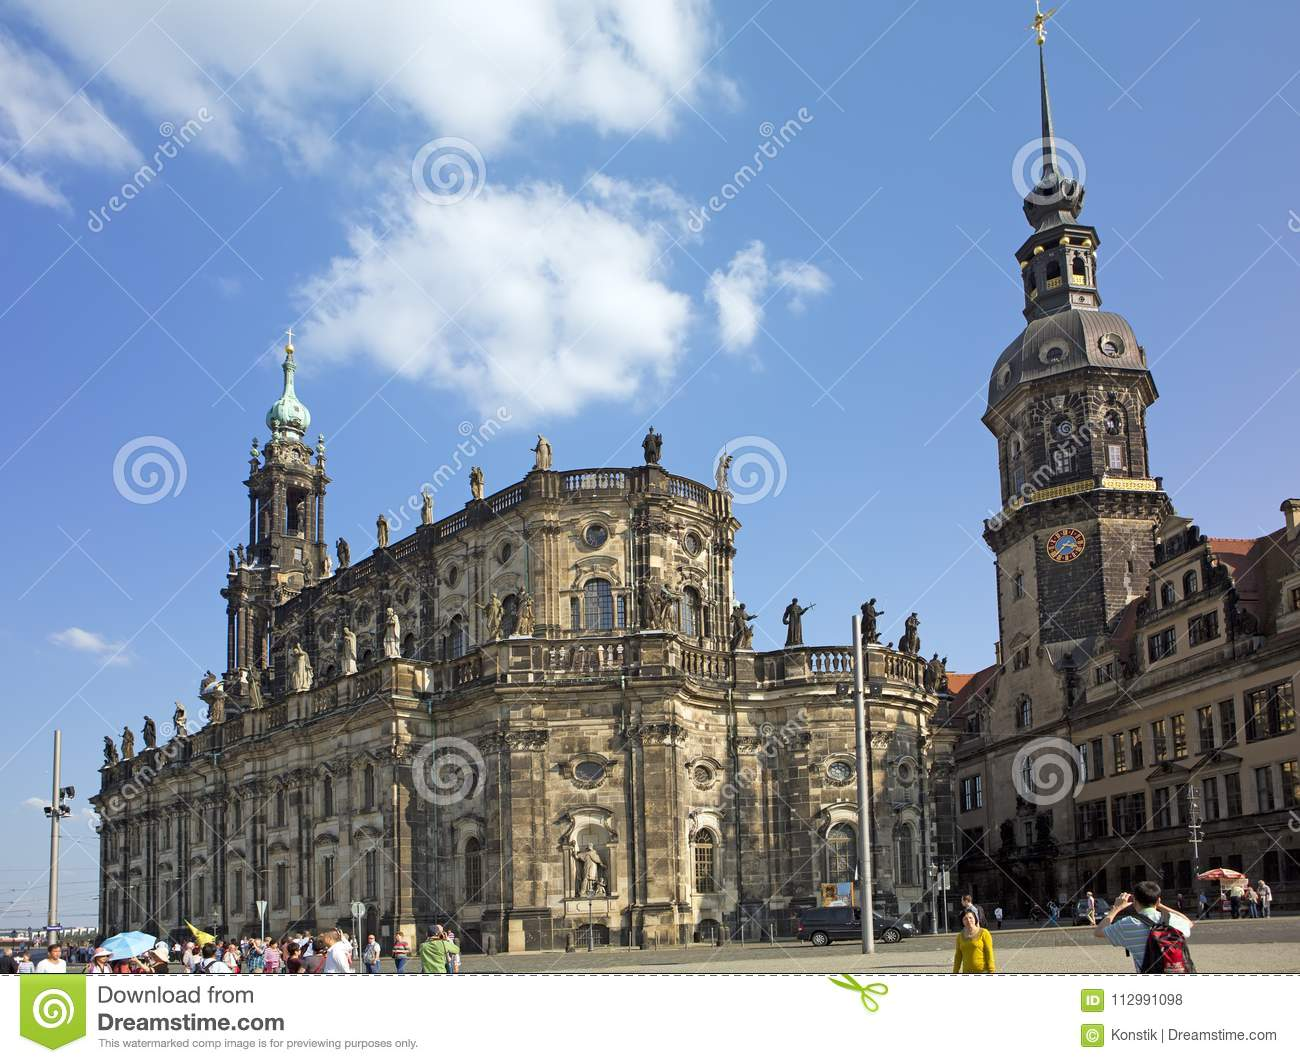 DRESDEN, GERMANY - SEPTEMBER 17, 2014: People walk in the center of Old town, near Cathedral of the Holy Trinity or Hofkirche and